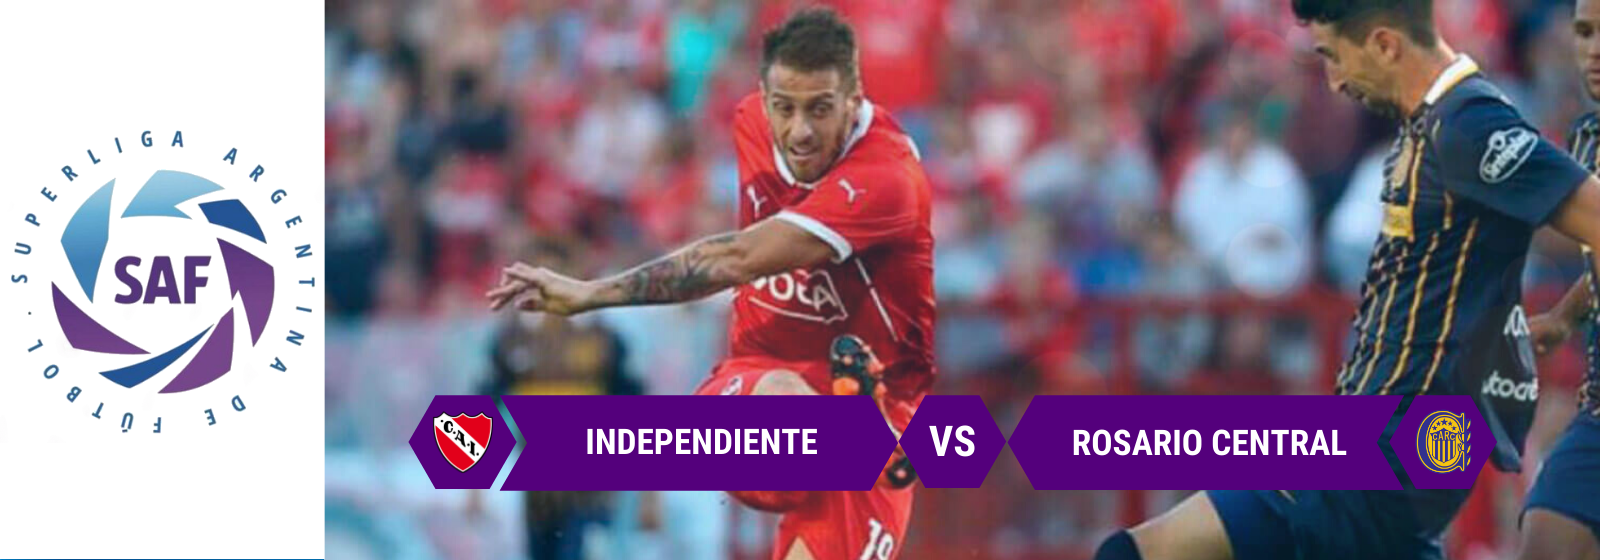 Asianconnect: Independiente vs Rosario Central Odds for February 01, 2020